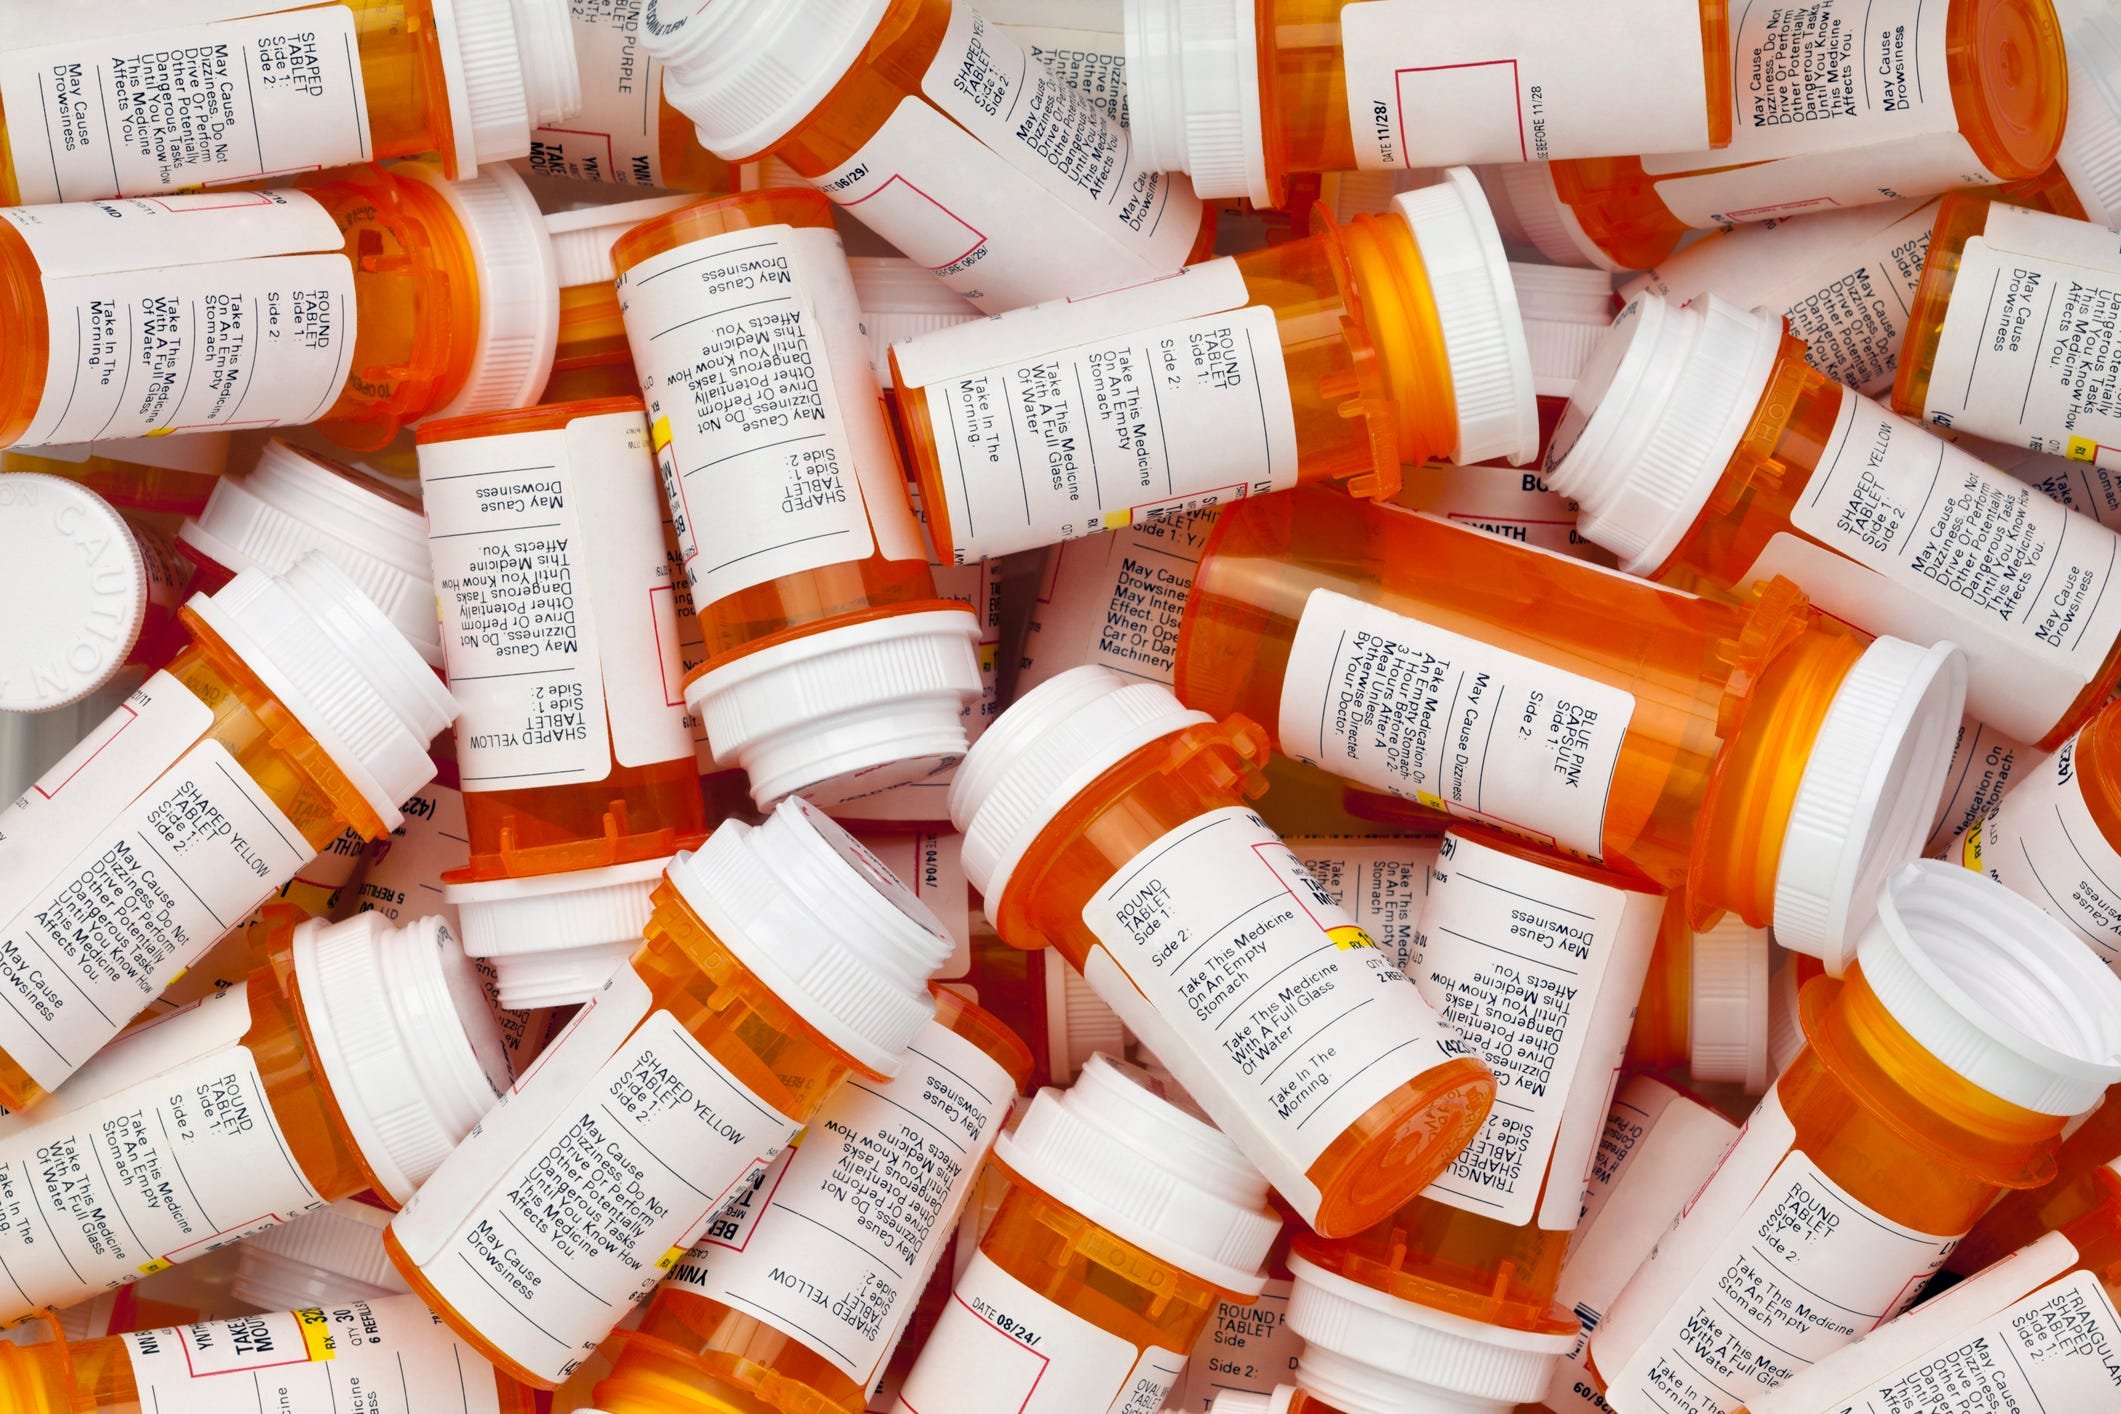 Thyroid medication recalled: Chinese manufacture's failed inspection leads to recall